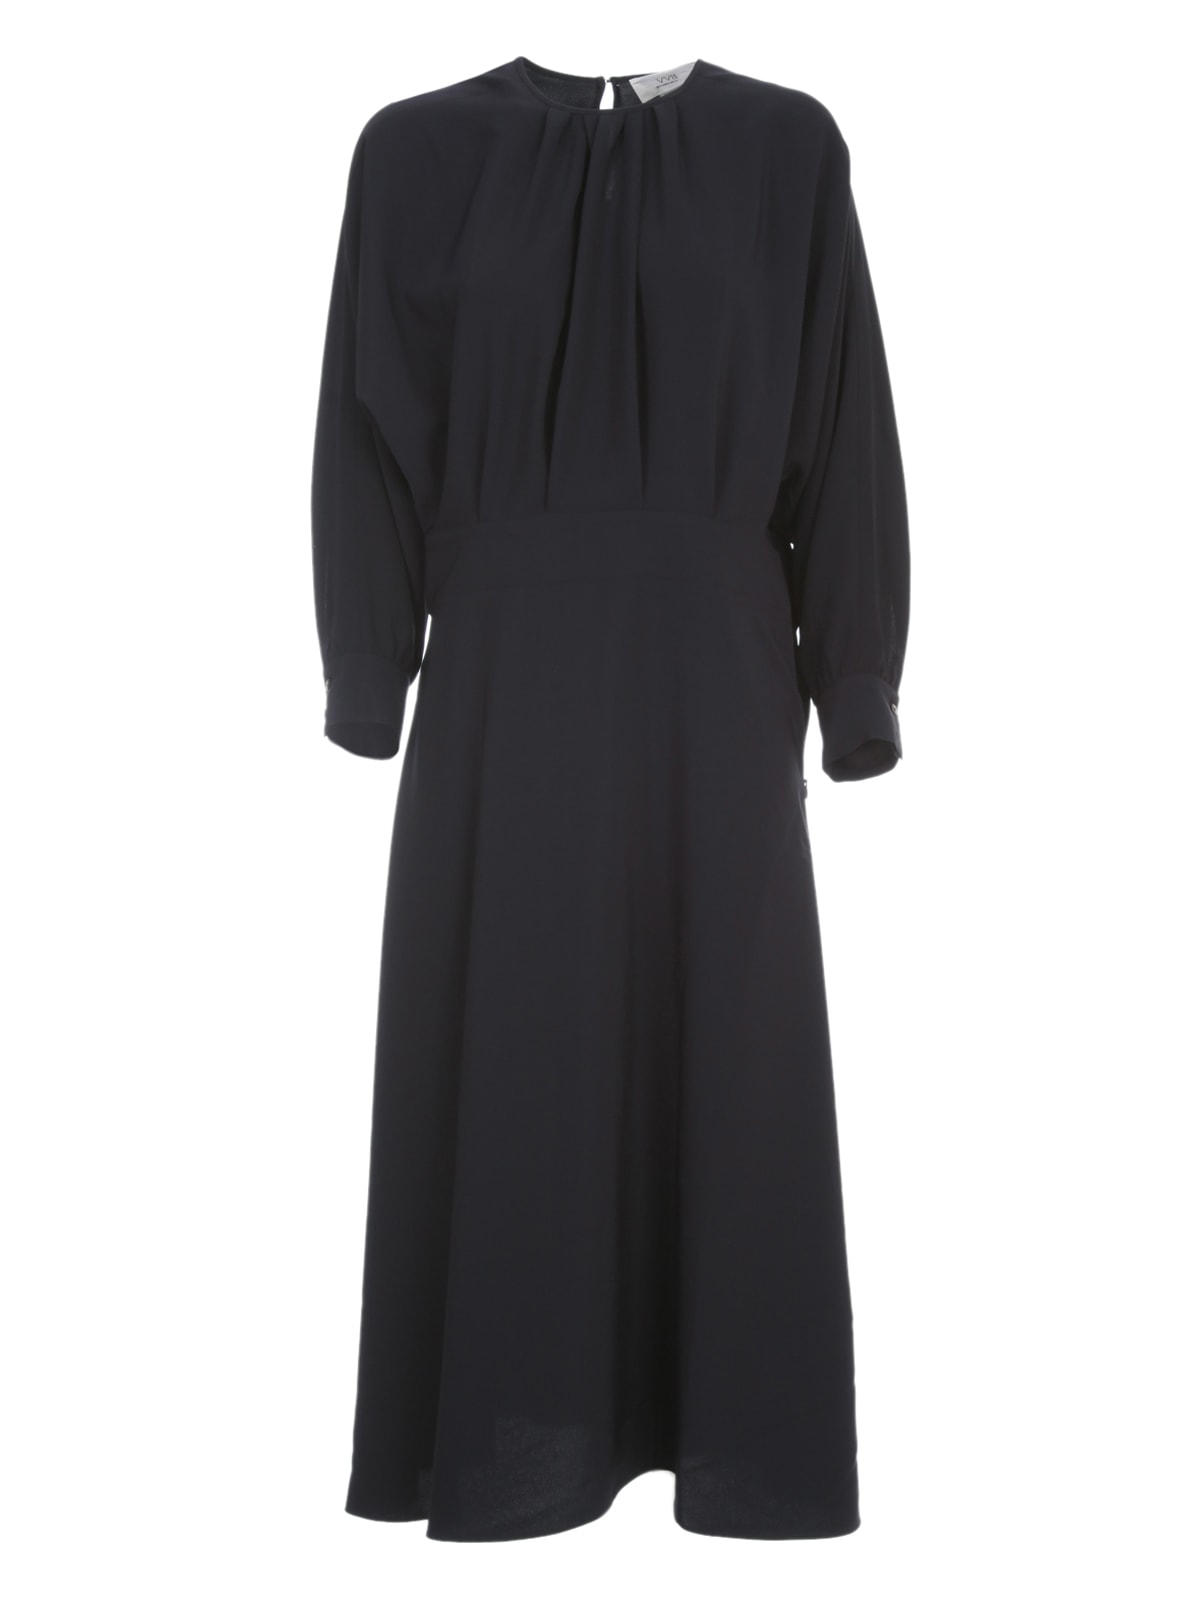 Buy Victoria Beckham Dolman Sleeve Dress online, shop Victoria Beckham with free shipping